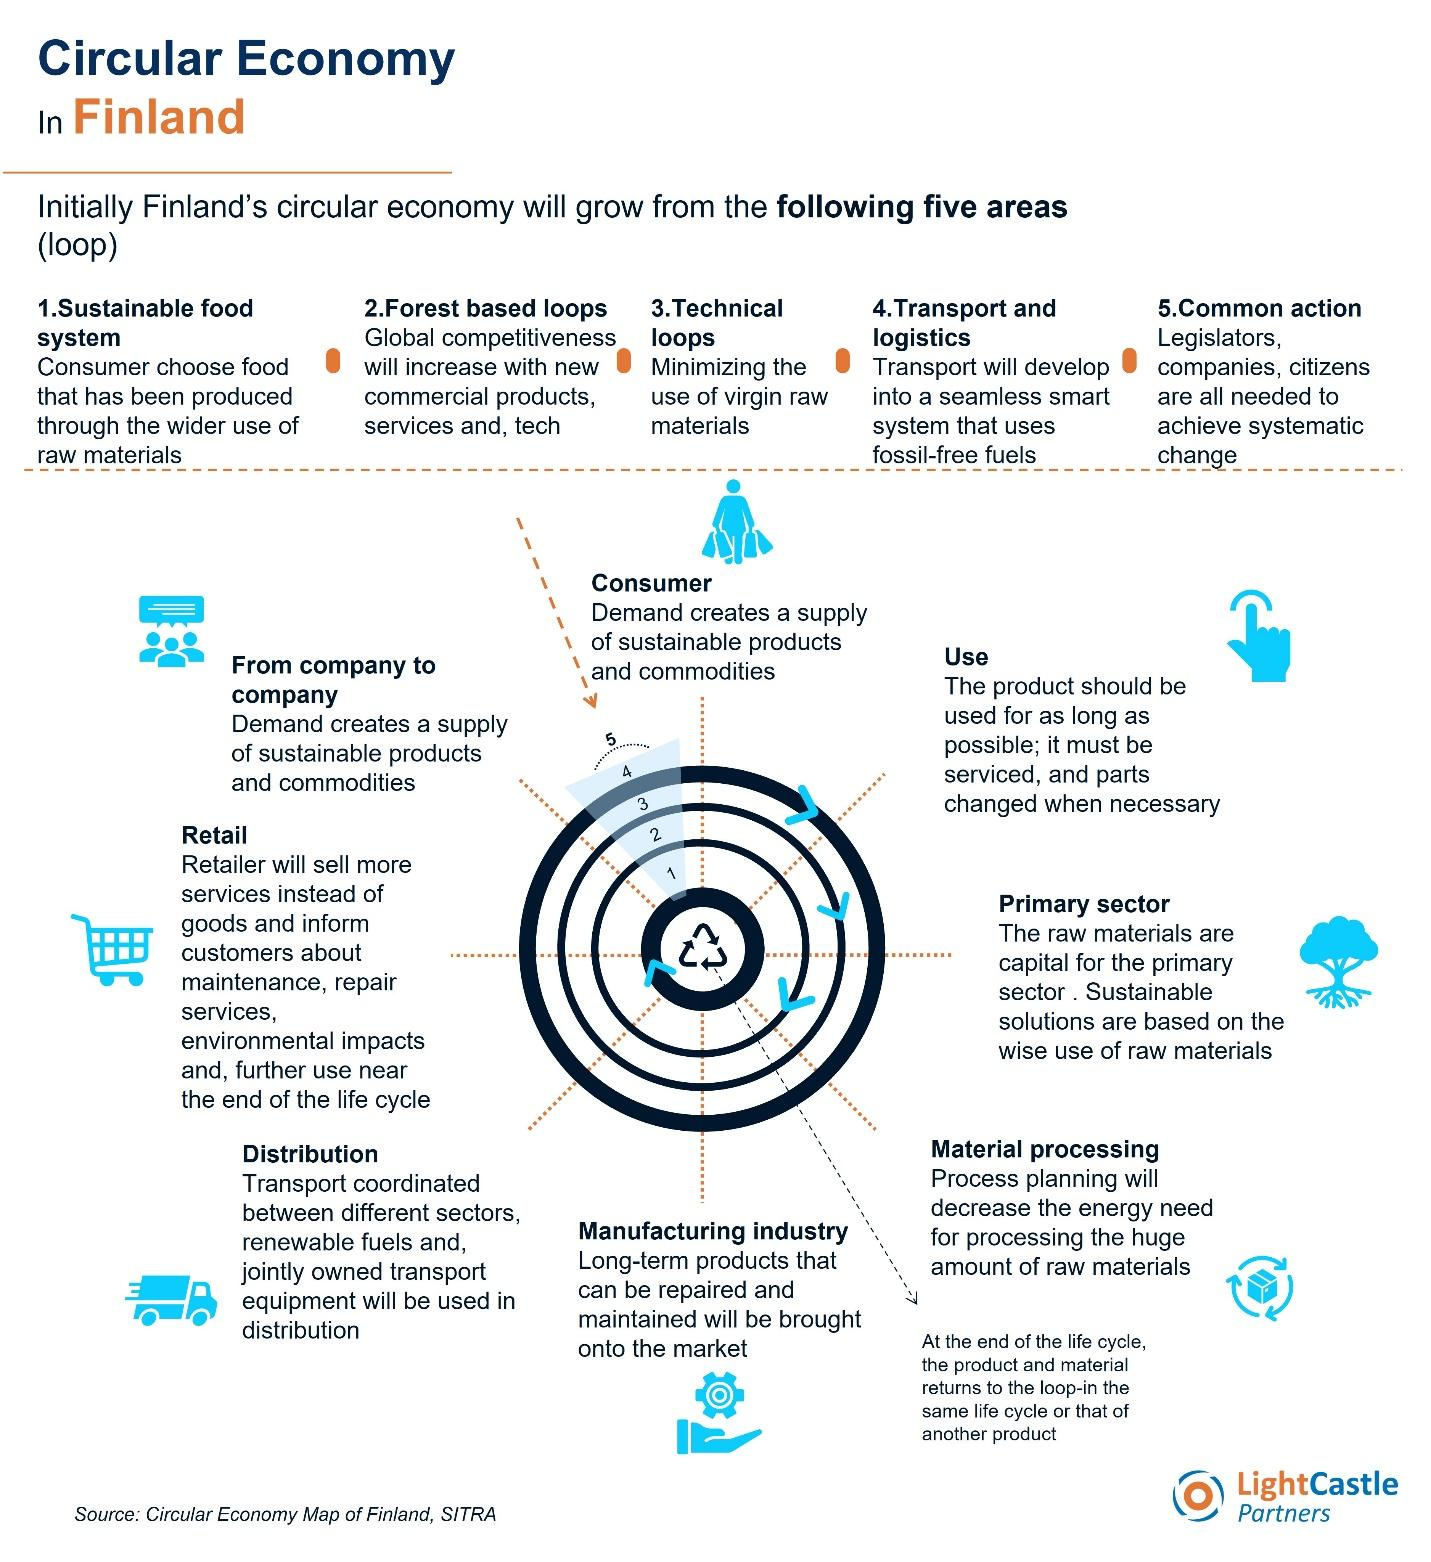 Diagram: How the circular economy works in Finland